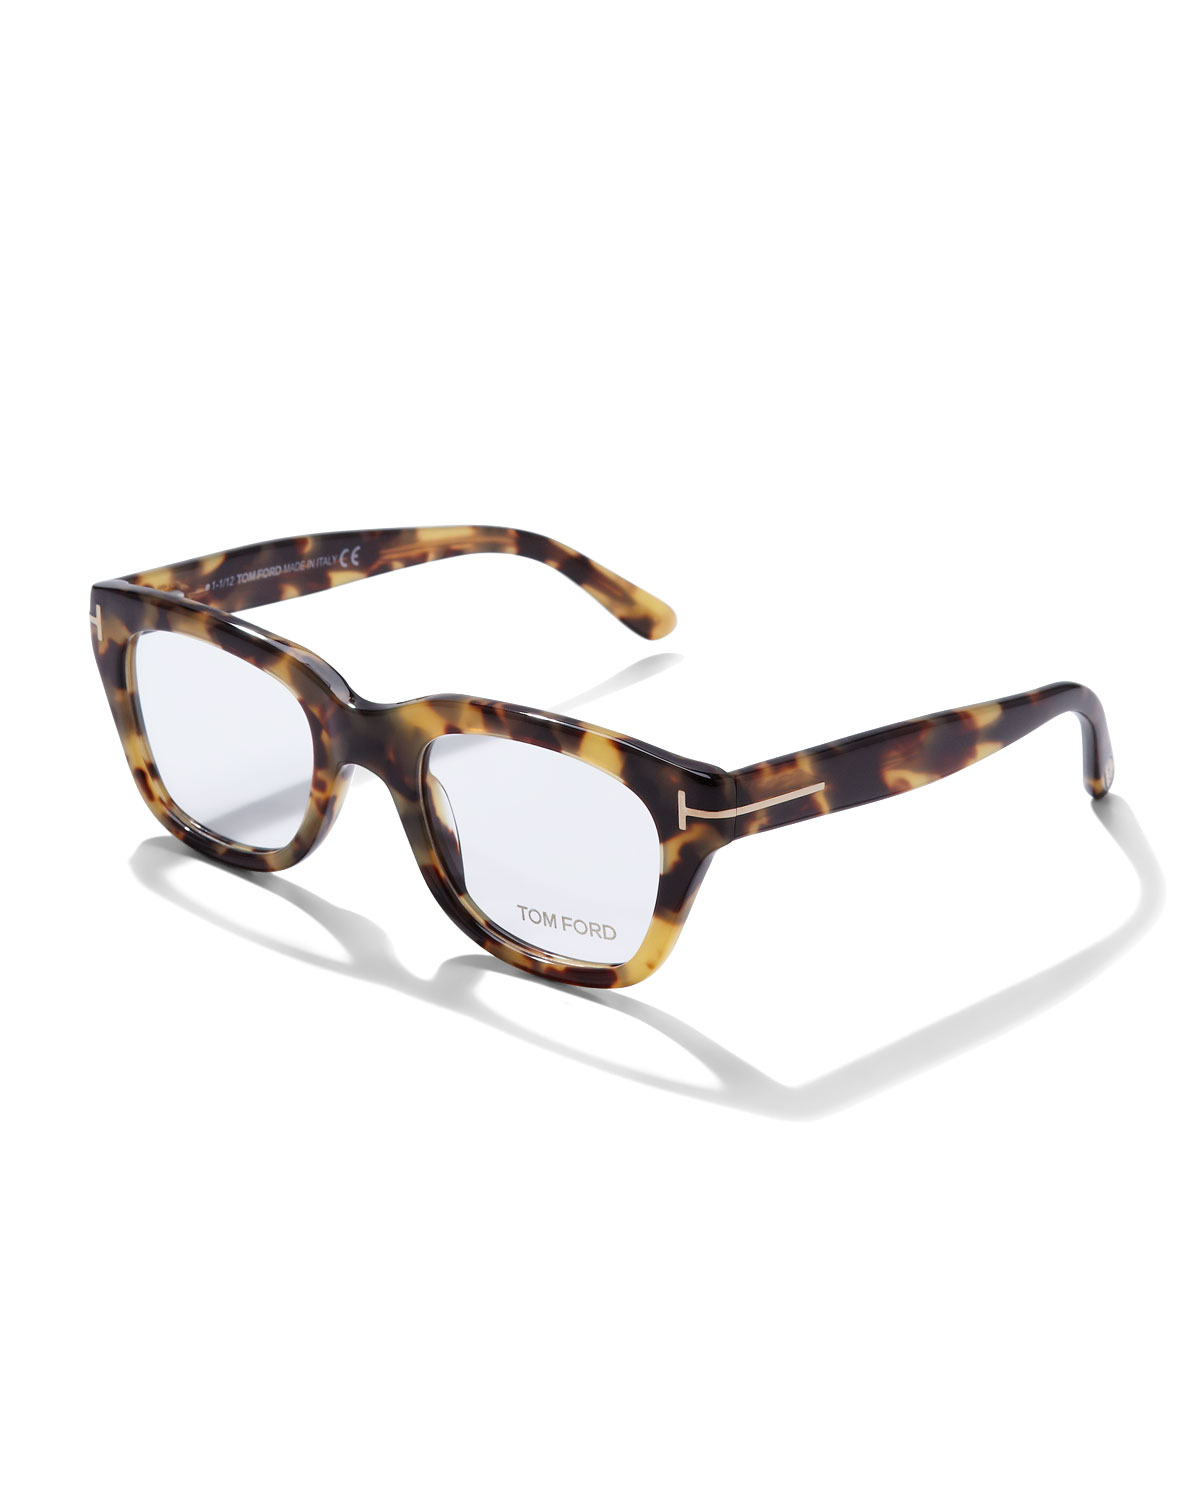 d1b5c74e5f TOM FORD Large Havana Fashion Glasses